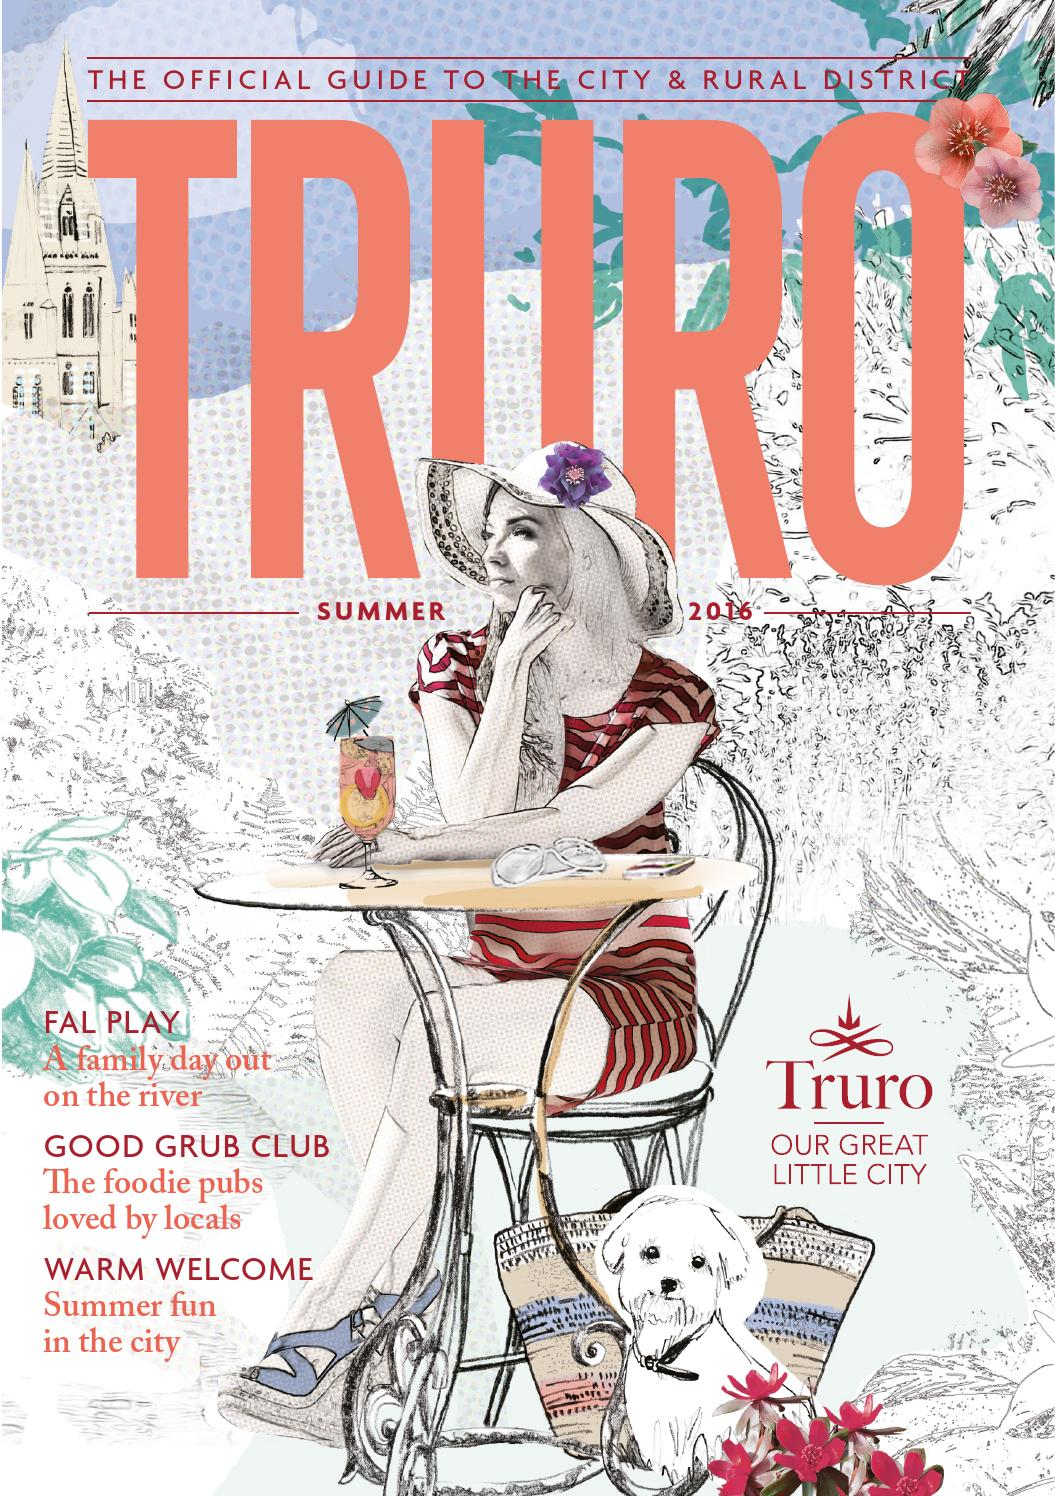 Truro Guide - Summer Issue 2016 by Visit Truro